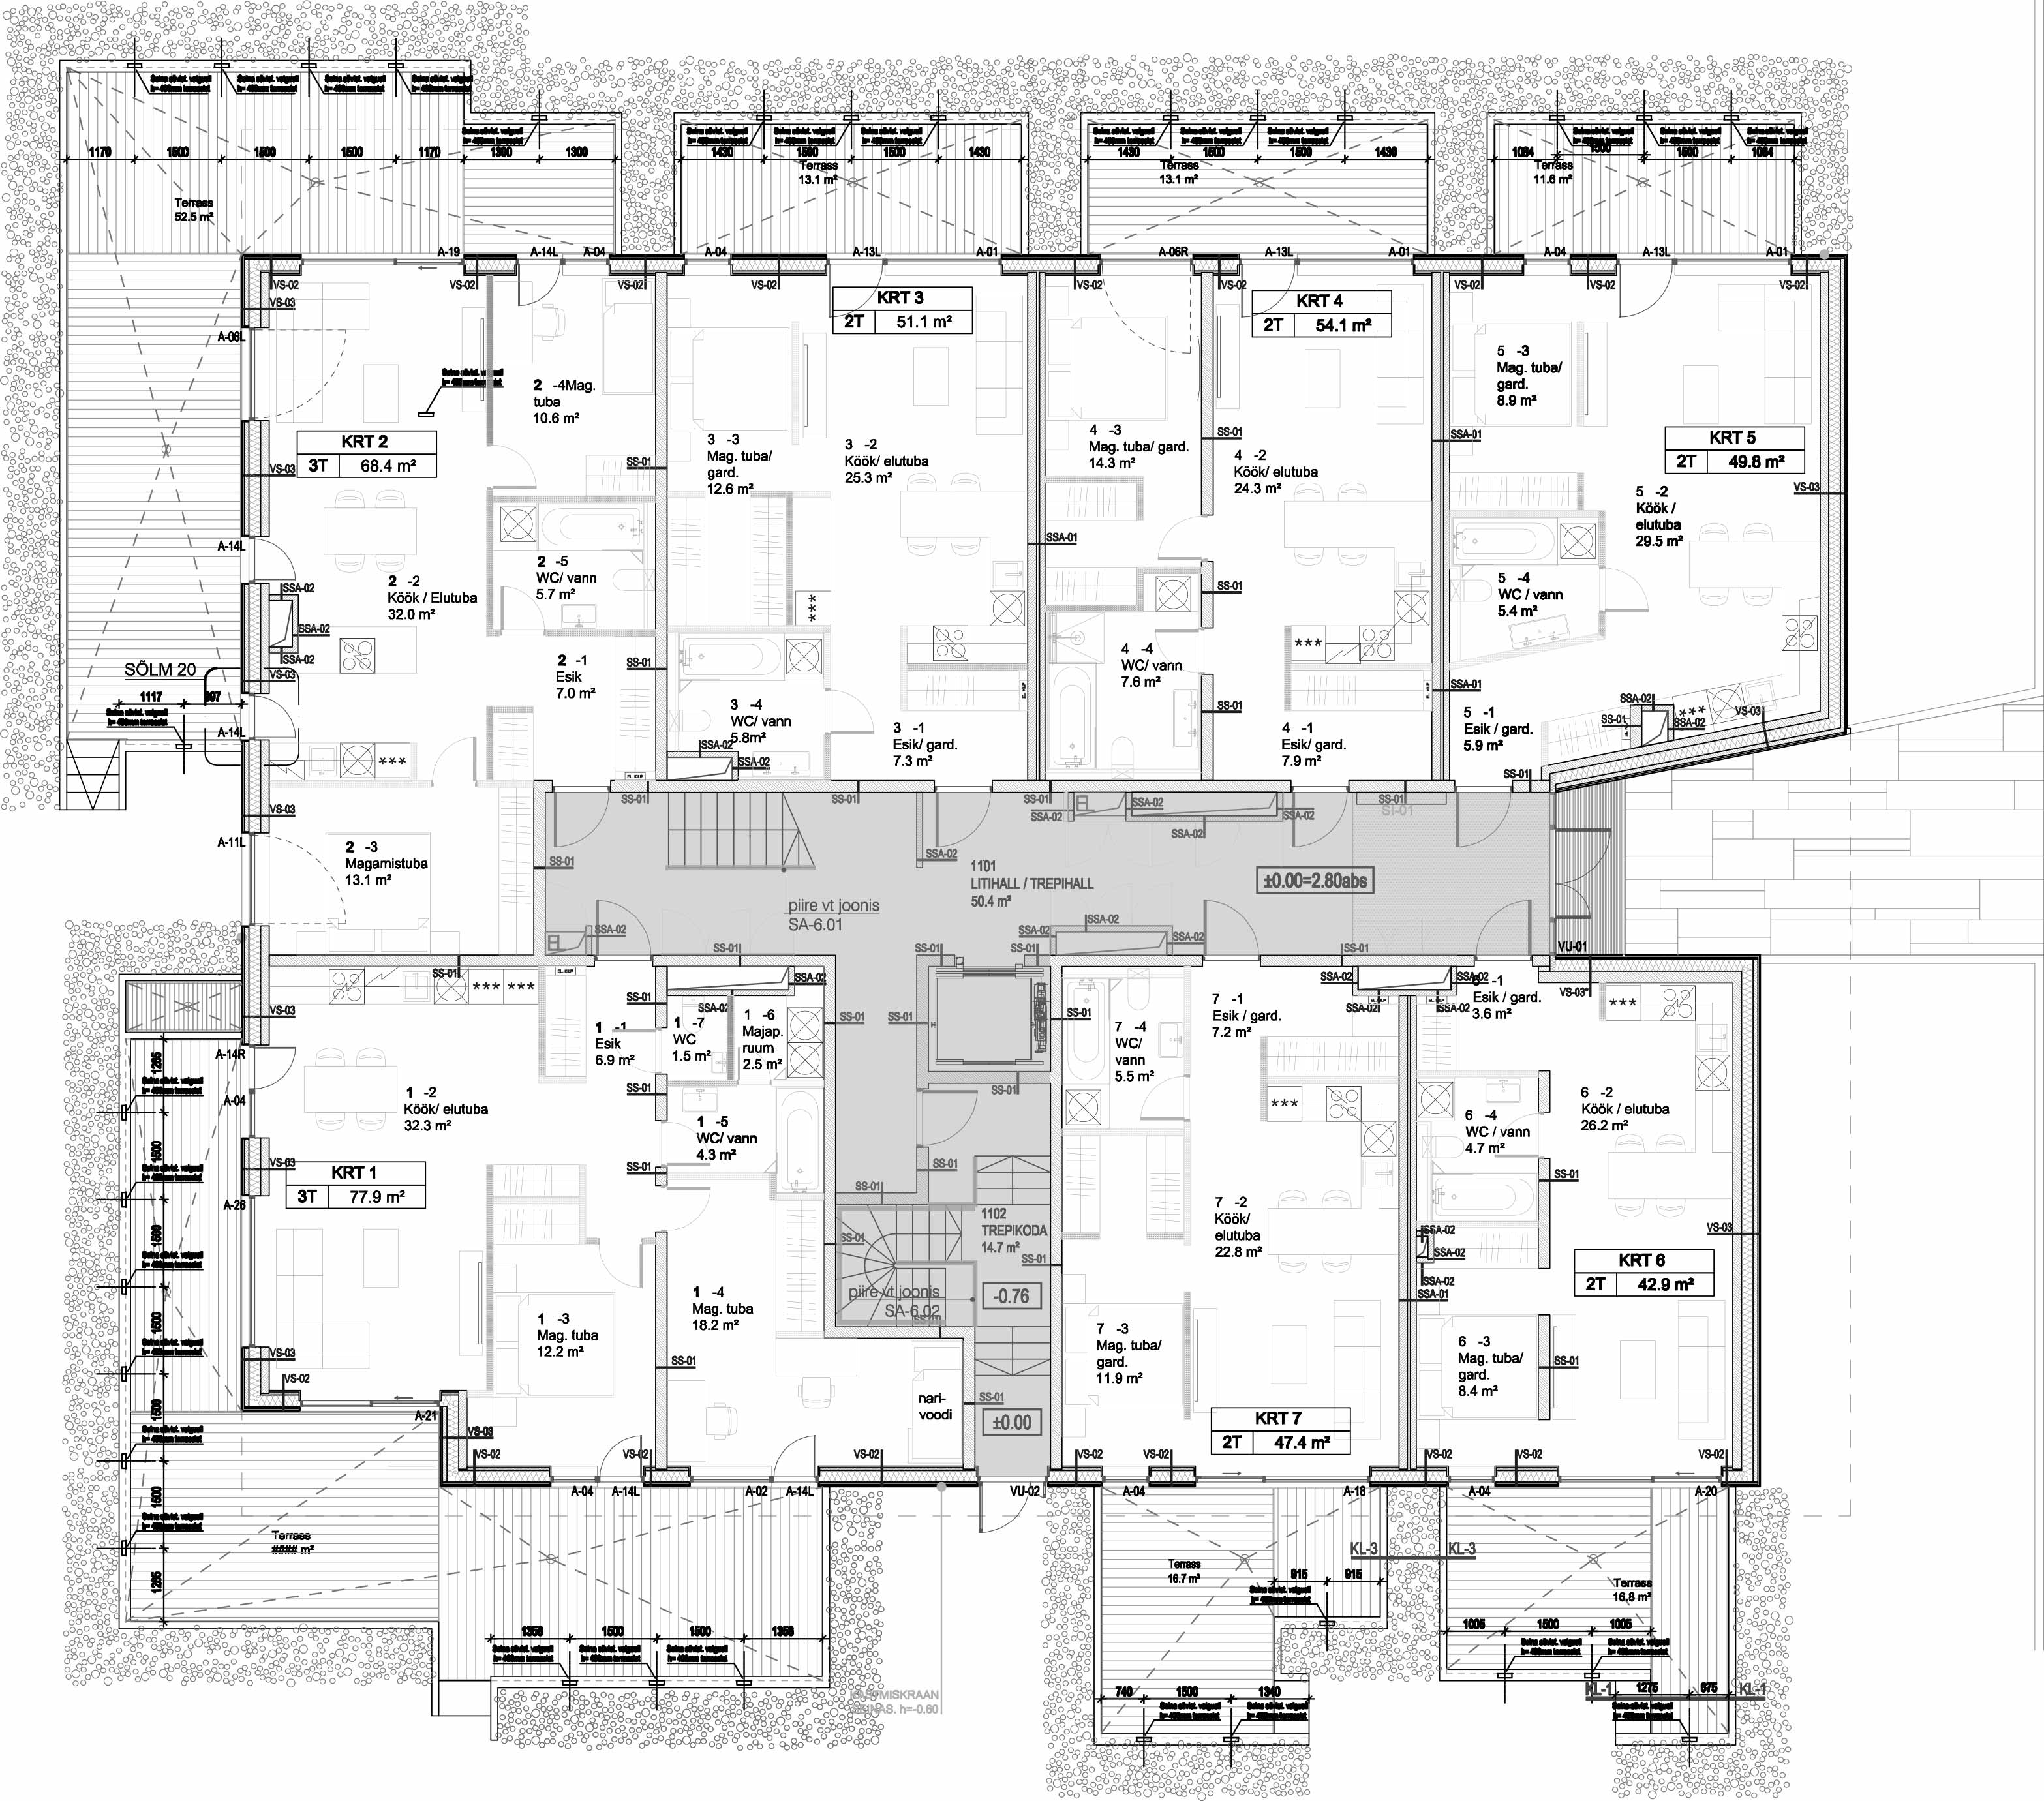 Floor 1 plan of Tuukri 25 Apartment House